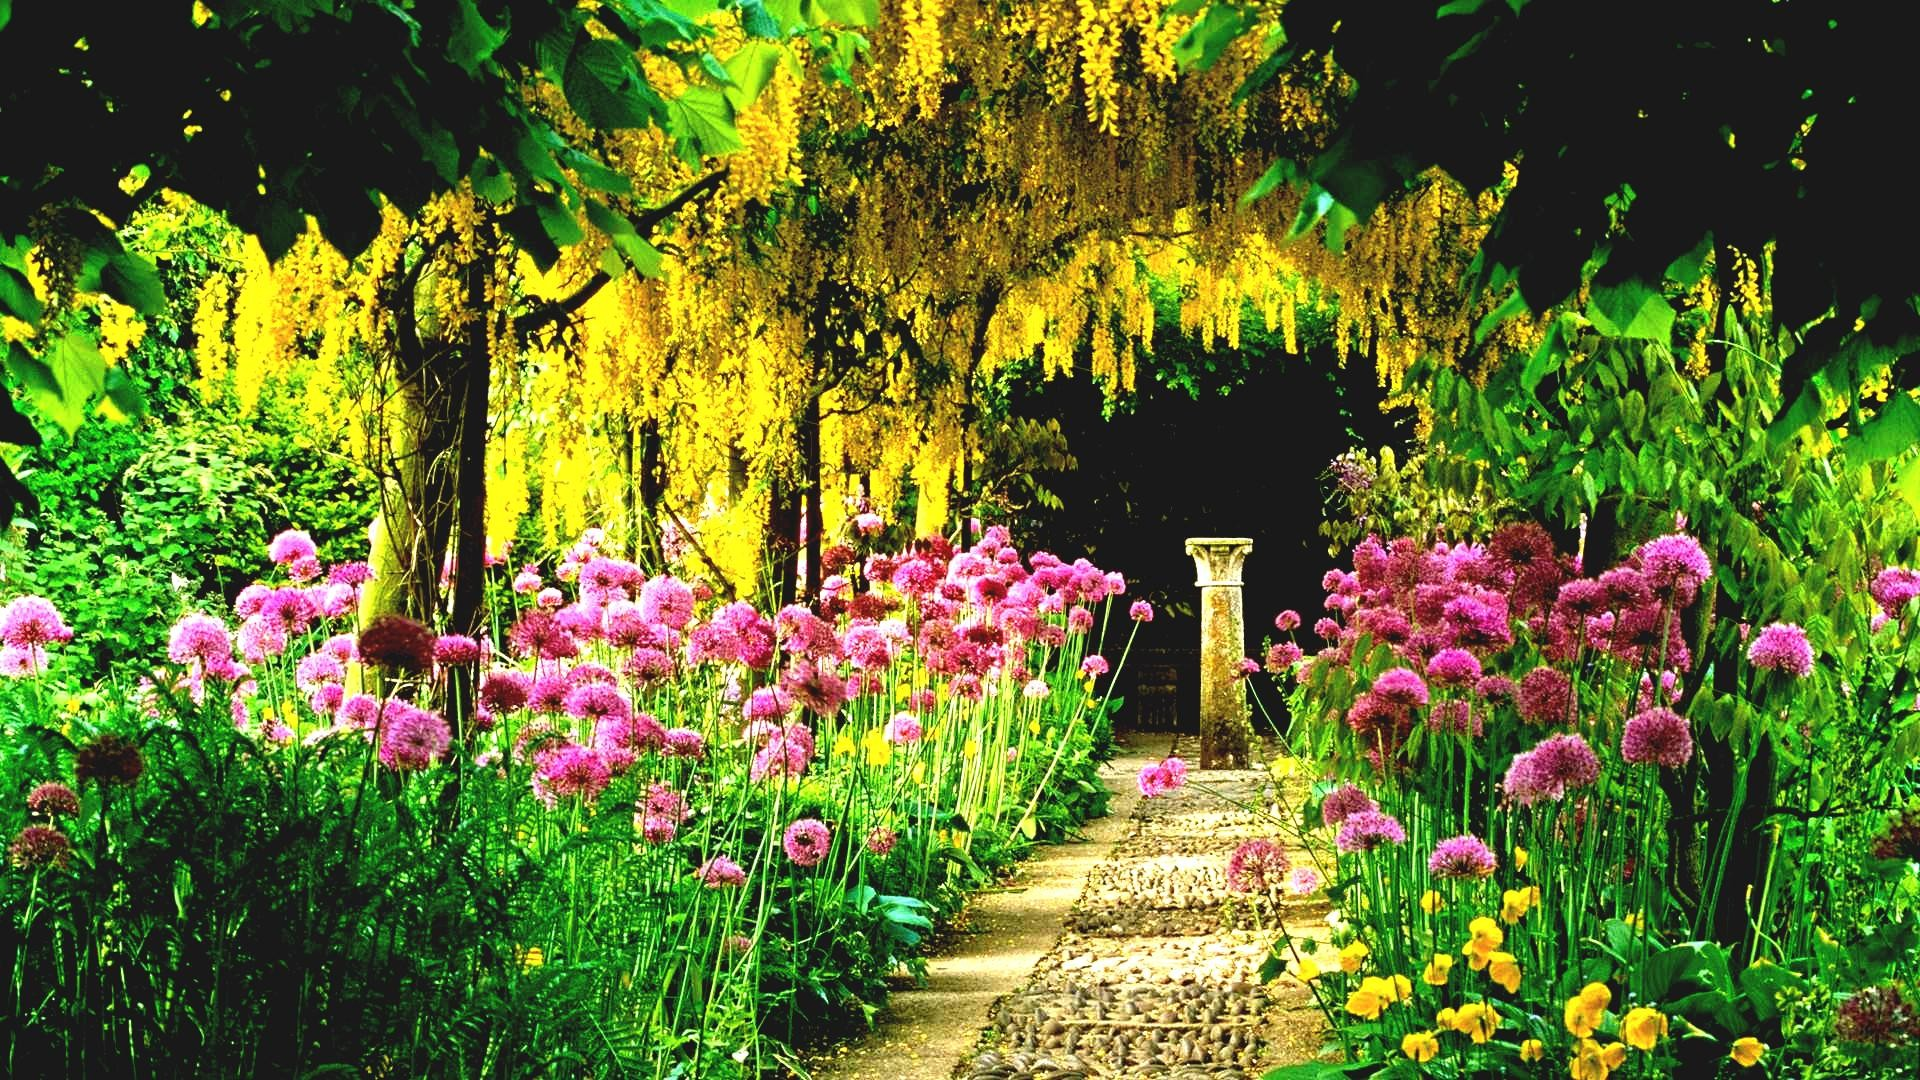 Res: 1920x1080, Flower Garden Hd Collection Of Beautiful Gardens With Best Flowers In A  Wallpaper Download